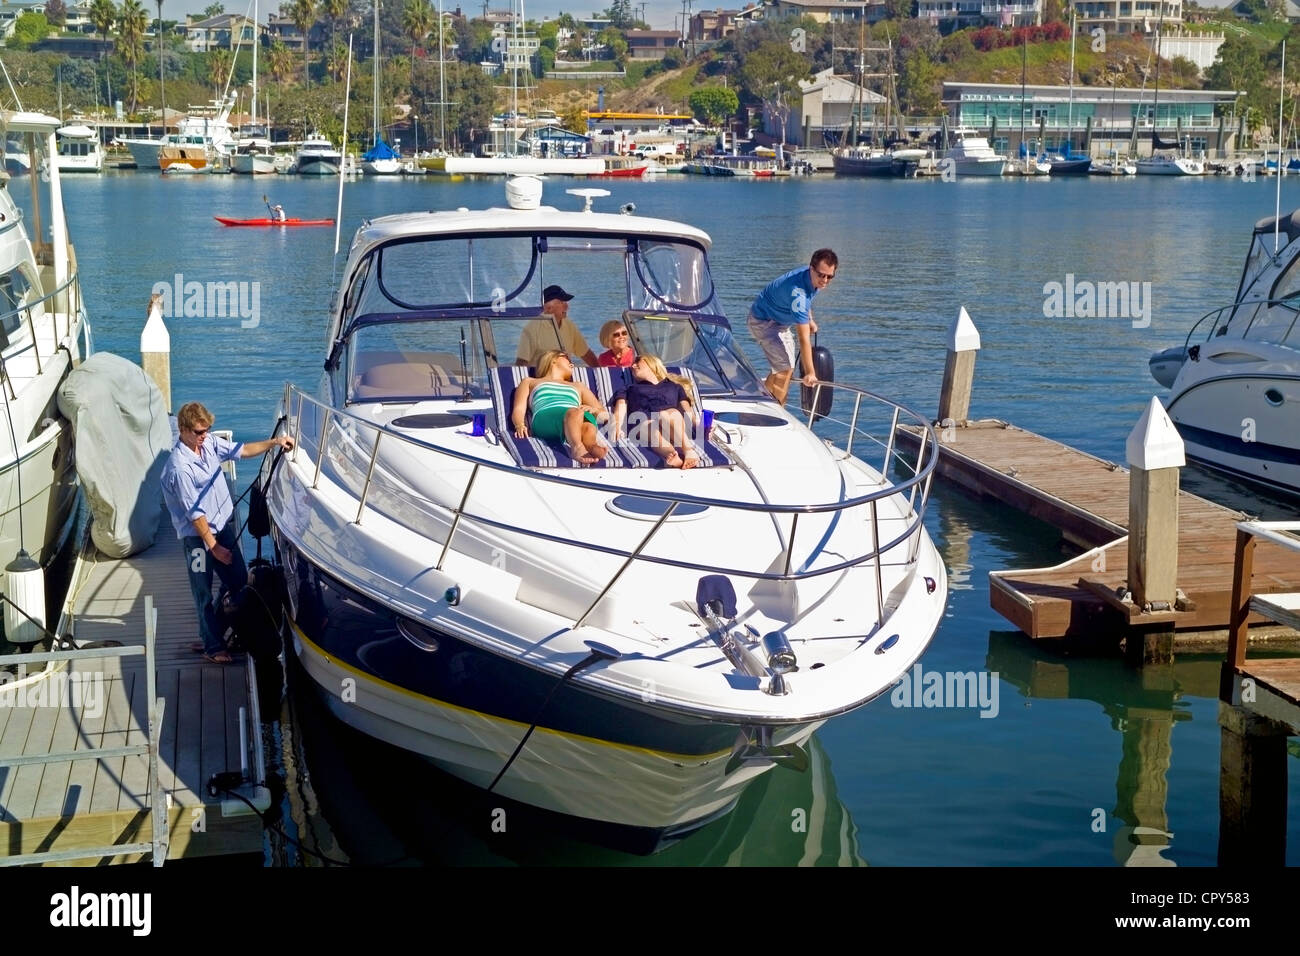 A yachting family and their friends cast off from their private Lido Isle dock for a cruise into the Pacific Ocean - Stock Image